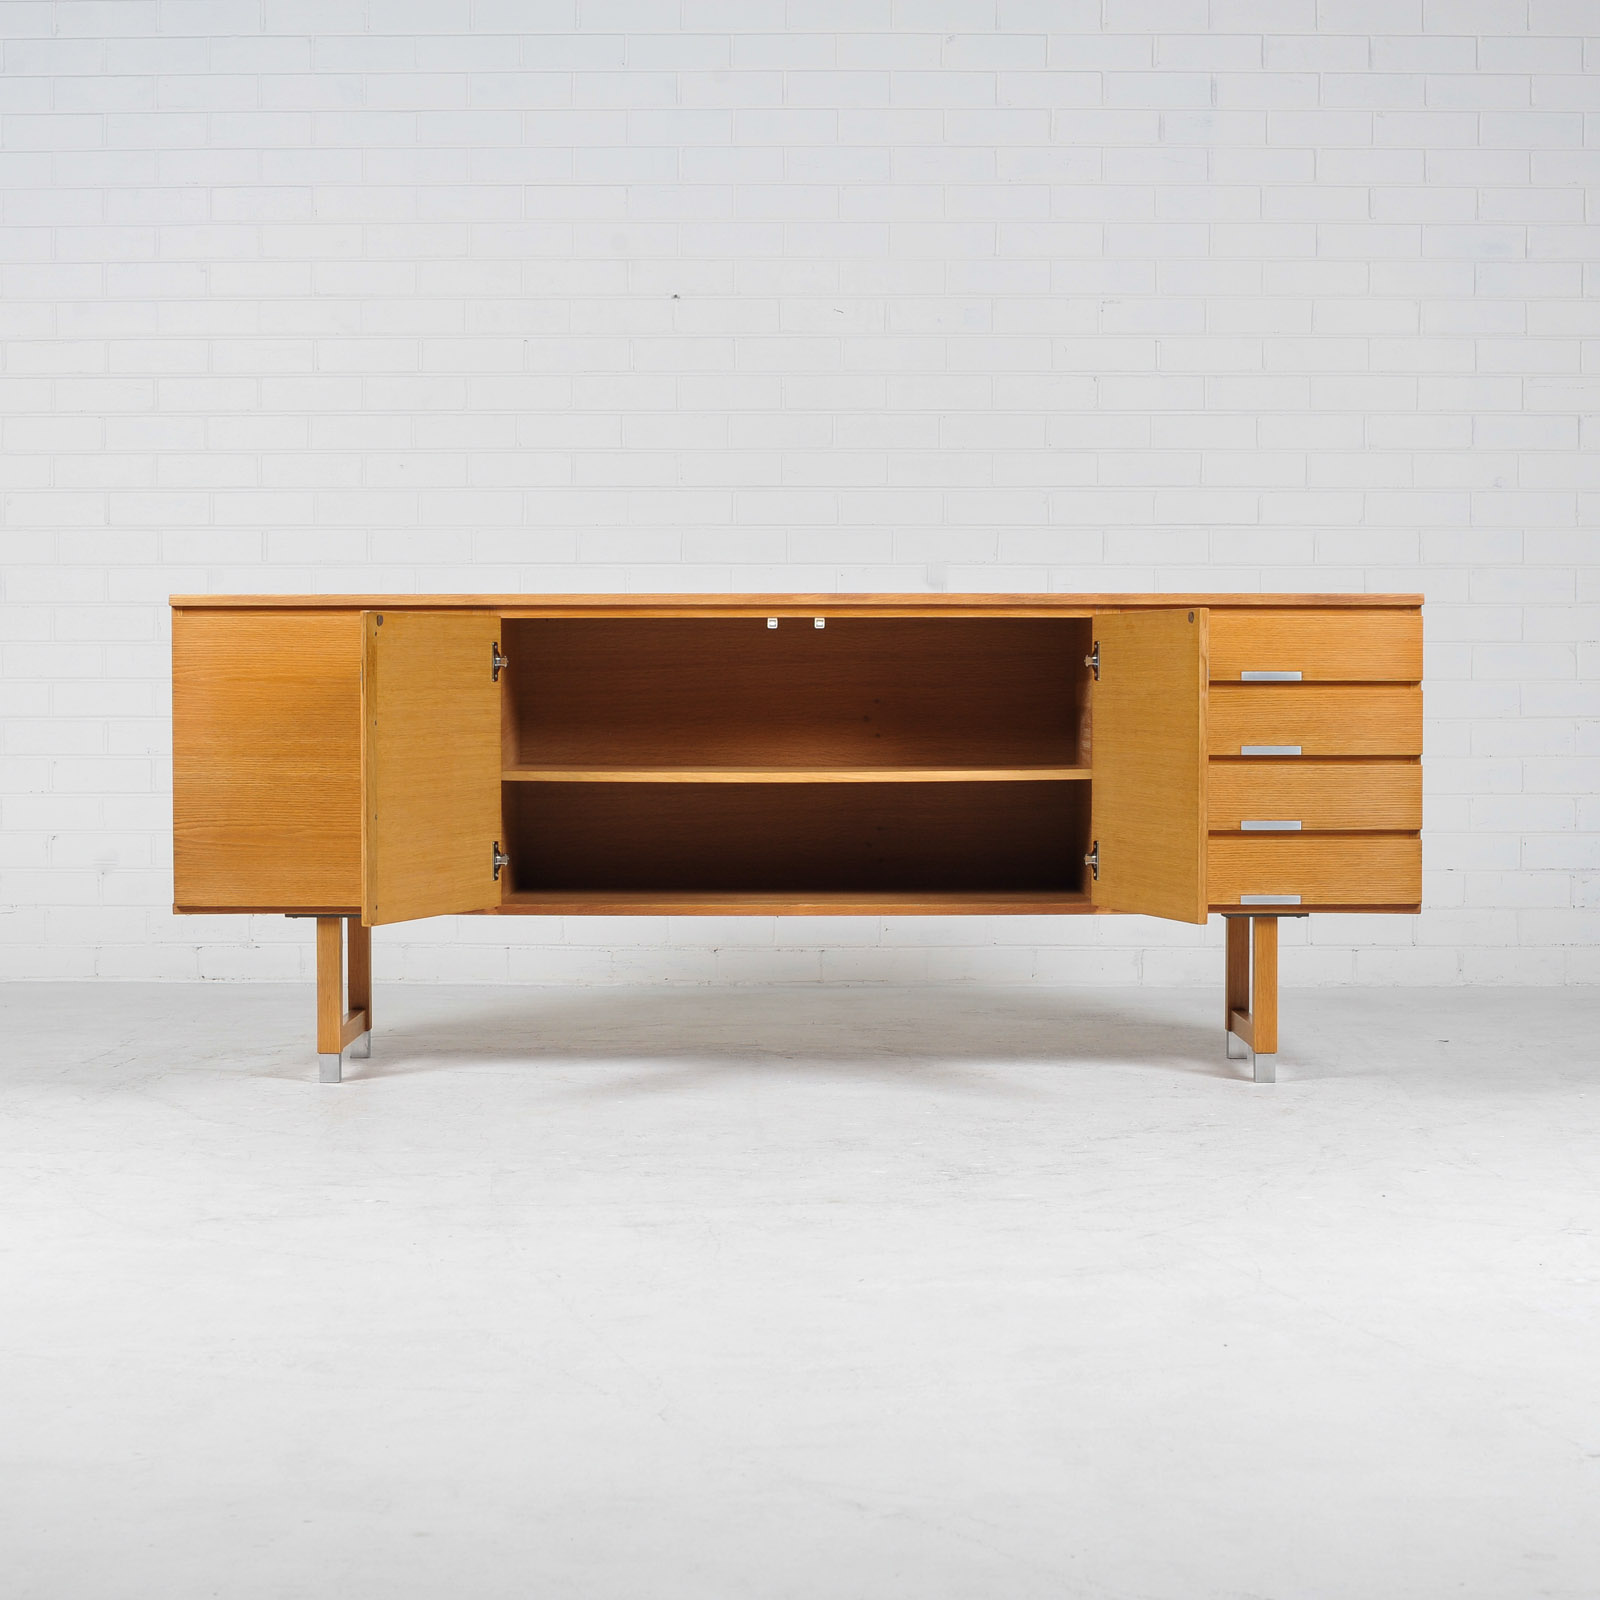 Sideboard By Kai Kristiansen For Fm Mobler In Oak With Polished Aluminium Details 1960s Denmark 03